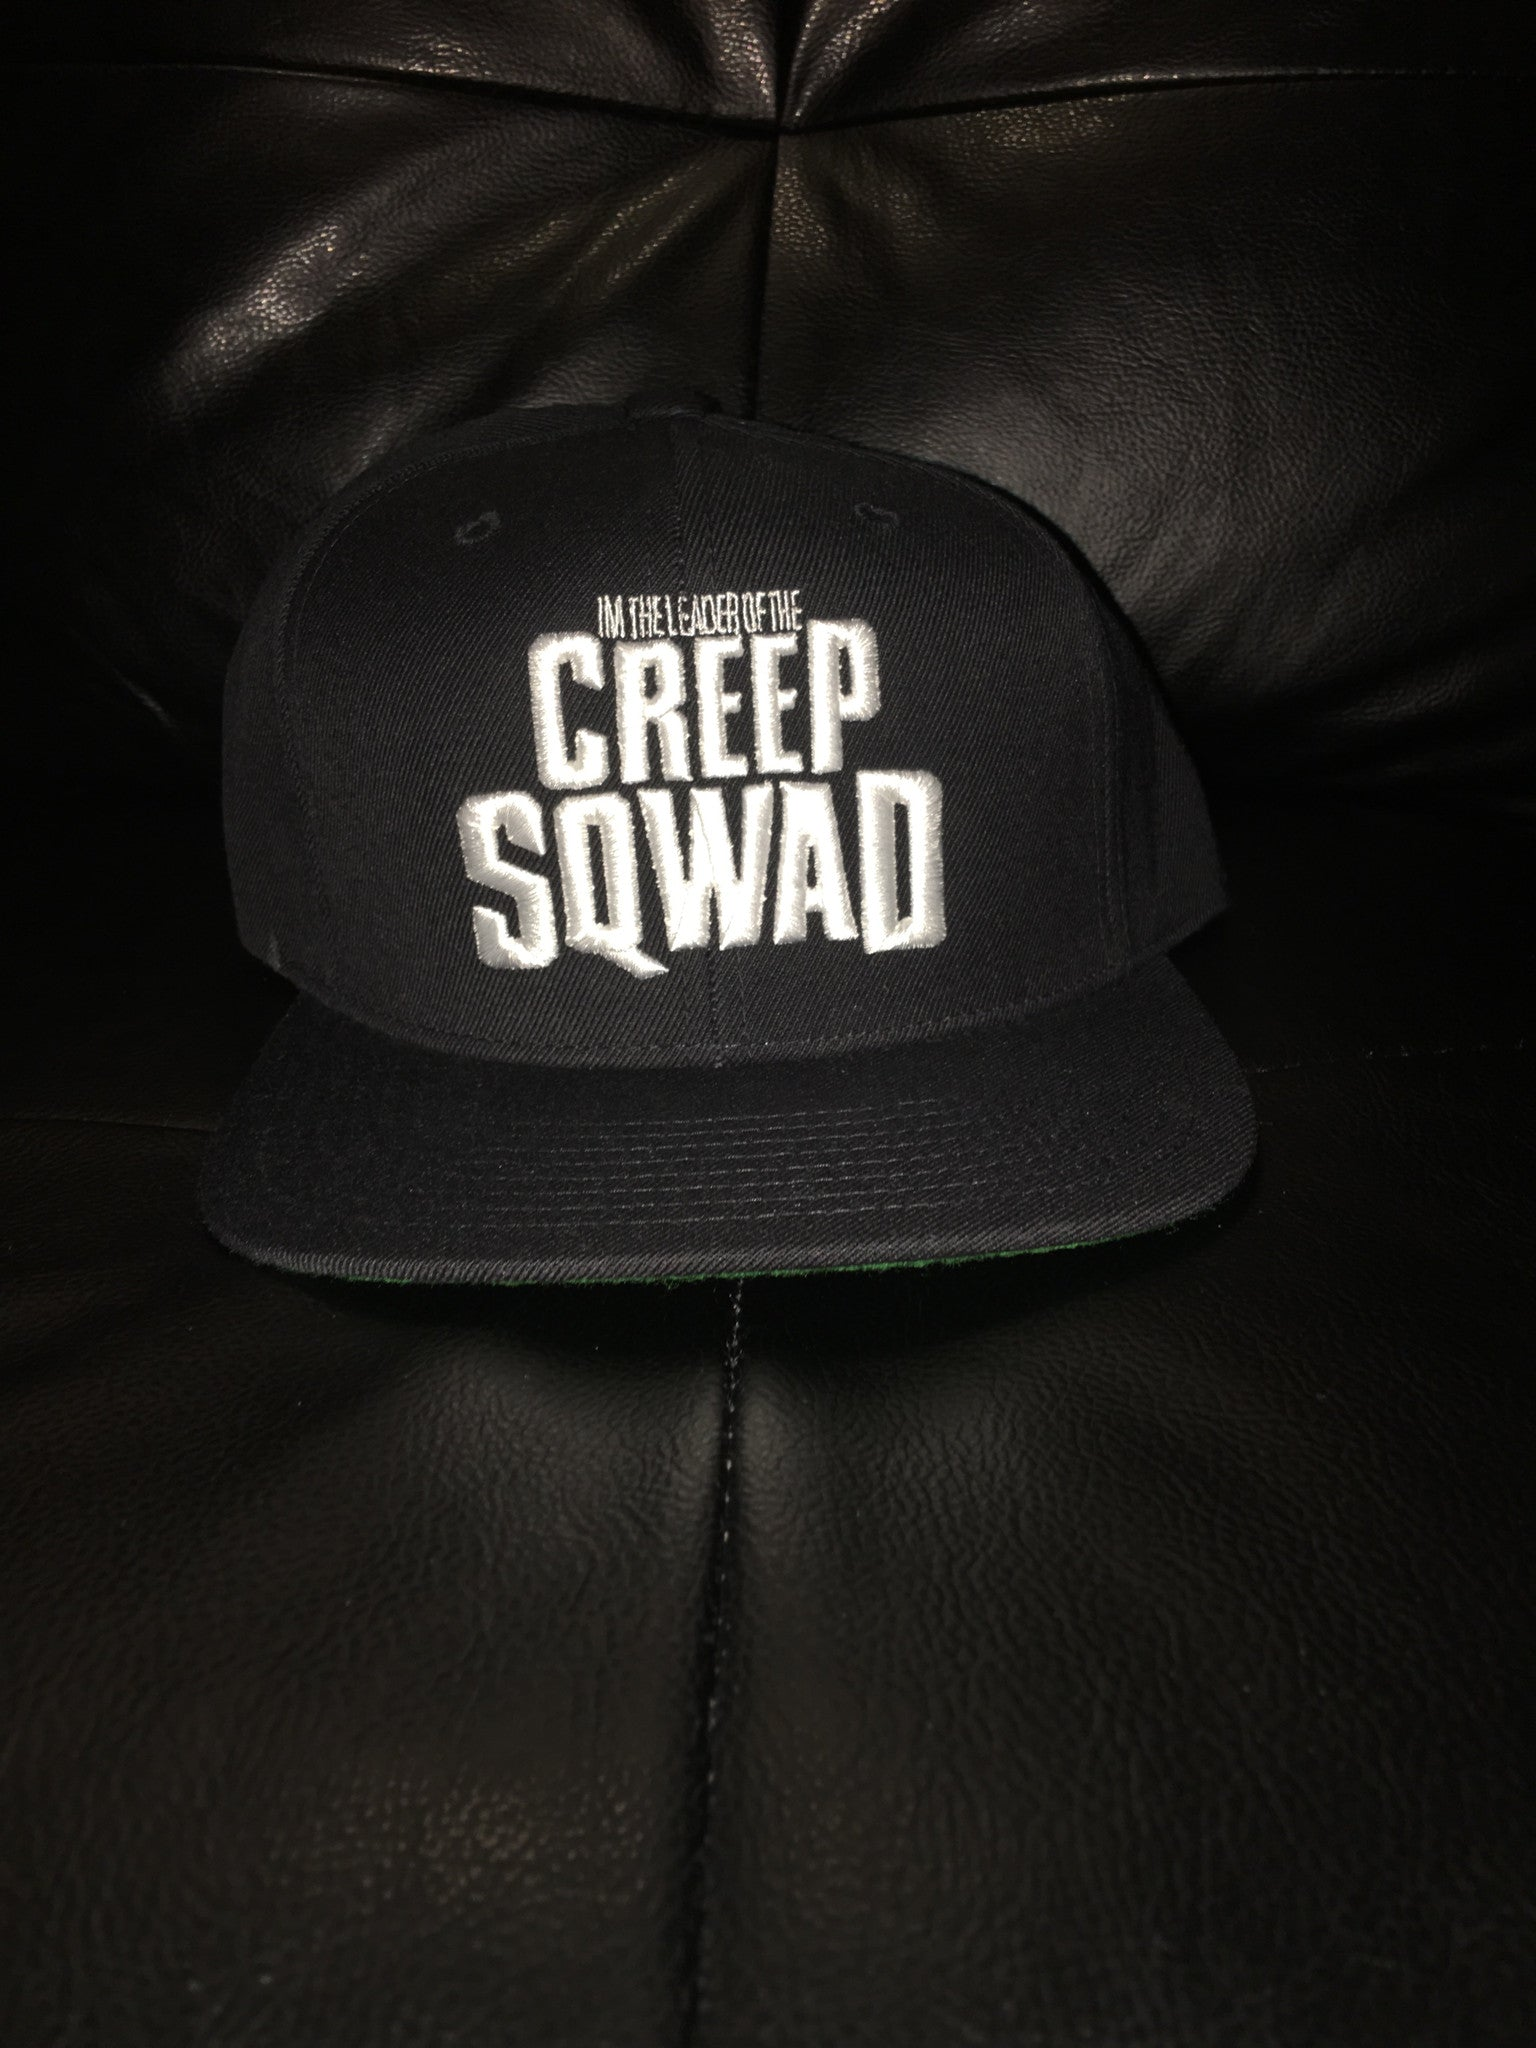 Classic Leader of the Creep Sqwad Snapback